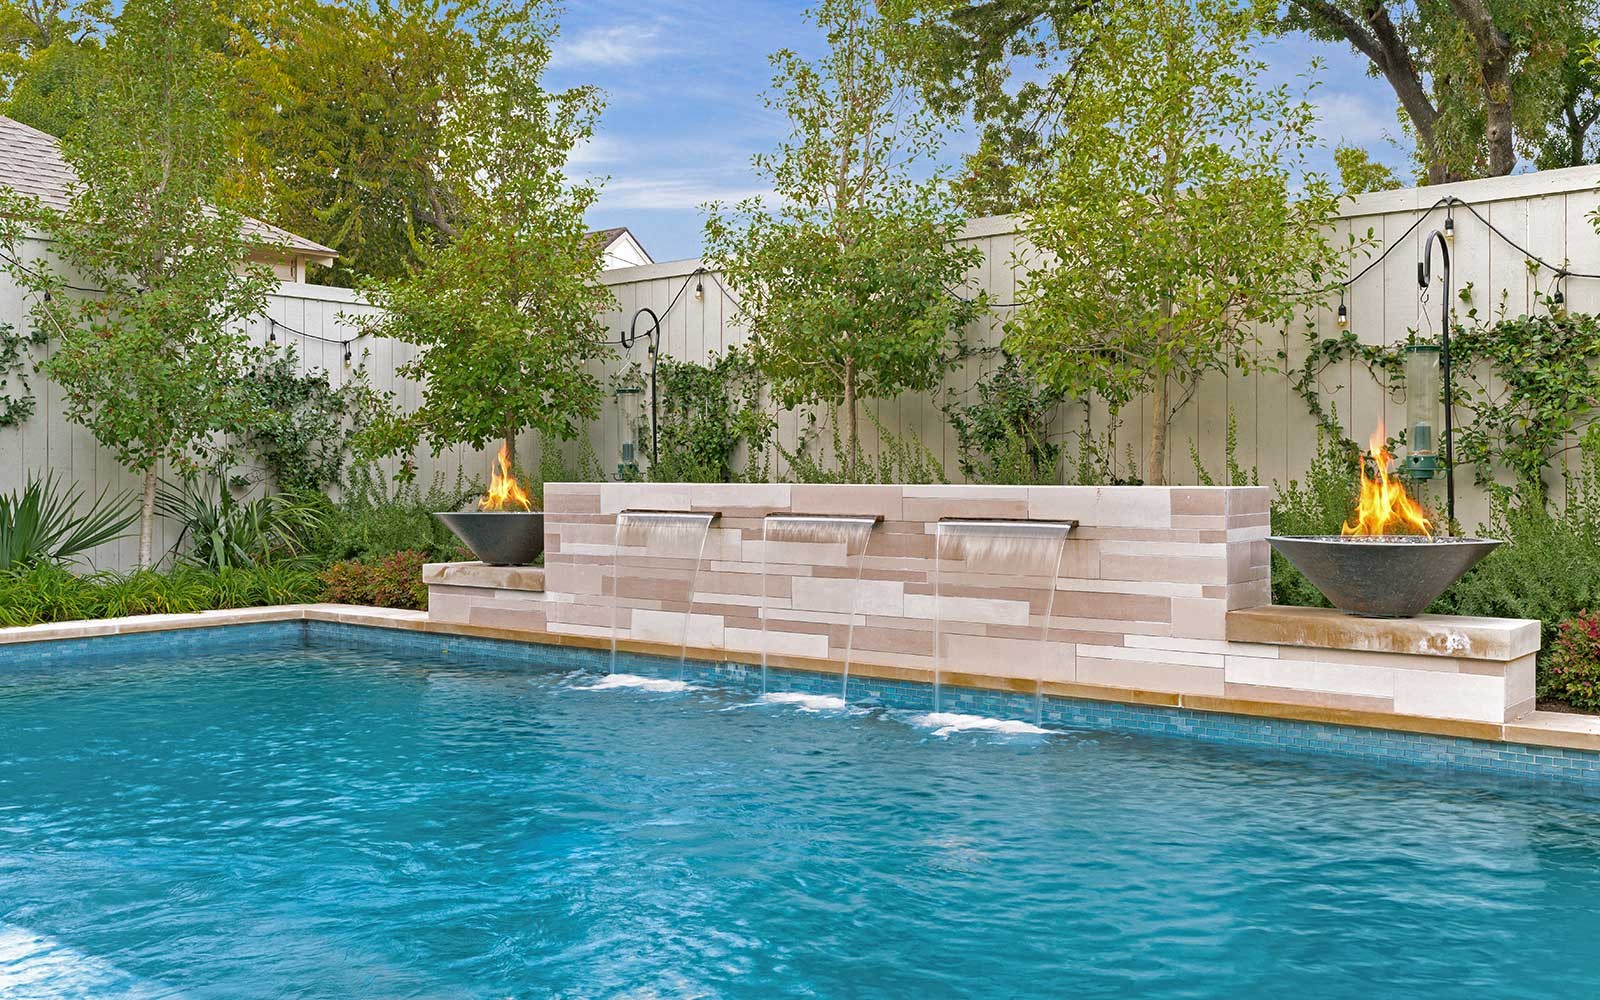 ddla-design-lakewood-pool